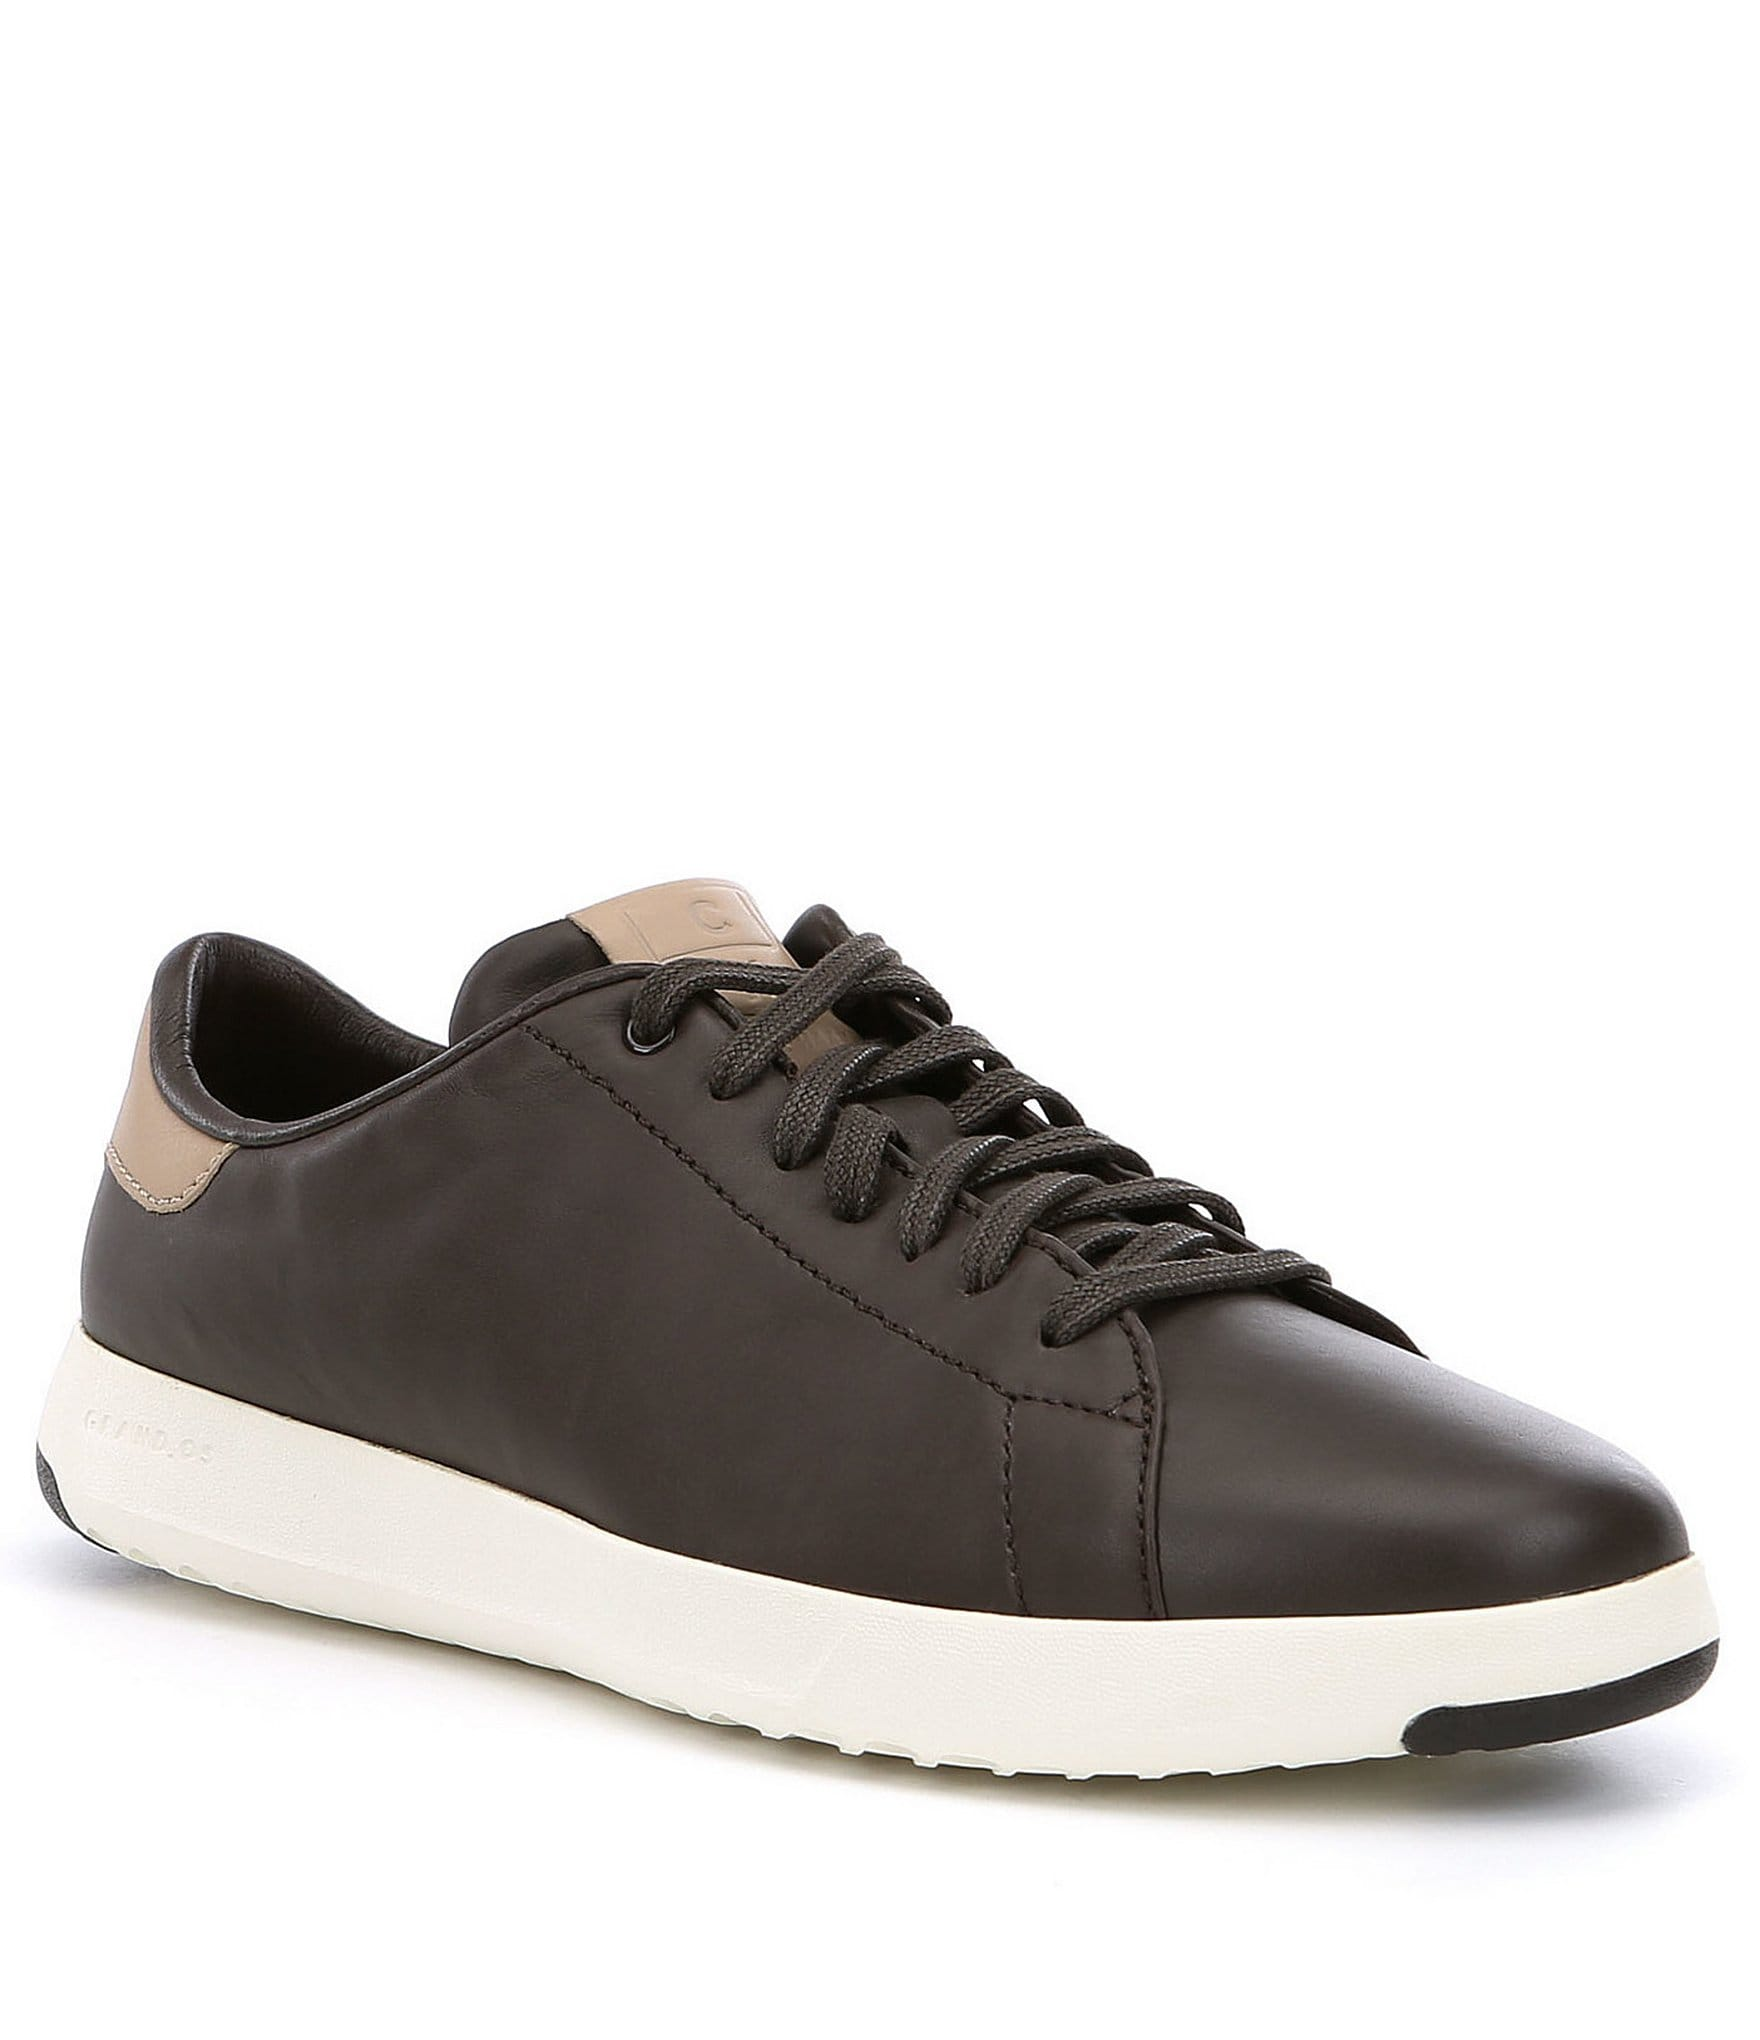 Cole Haan Baby Shoes Sale